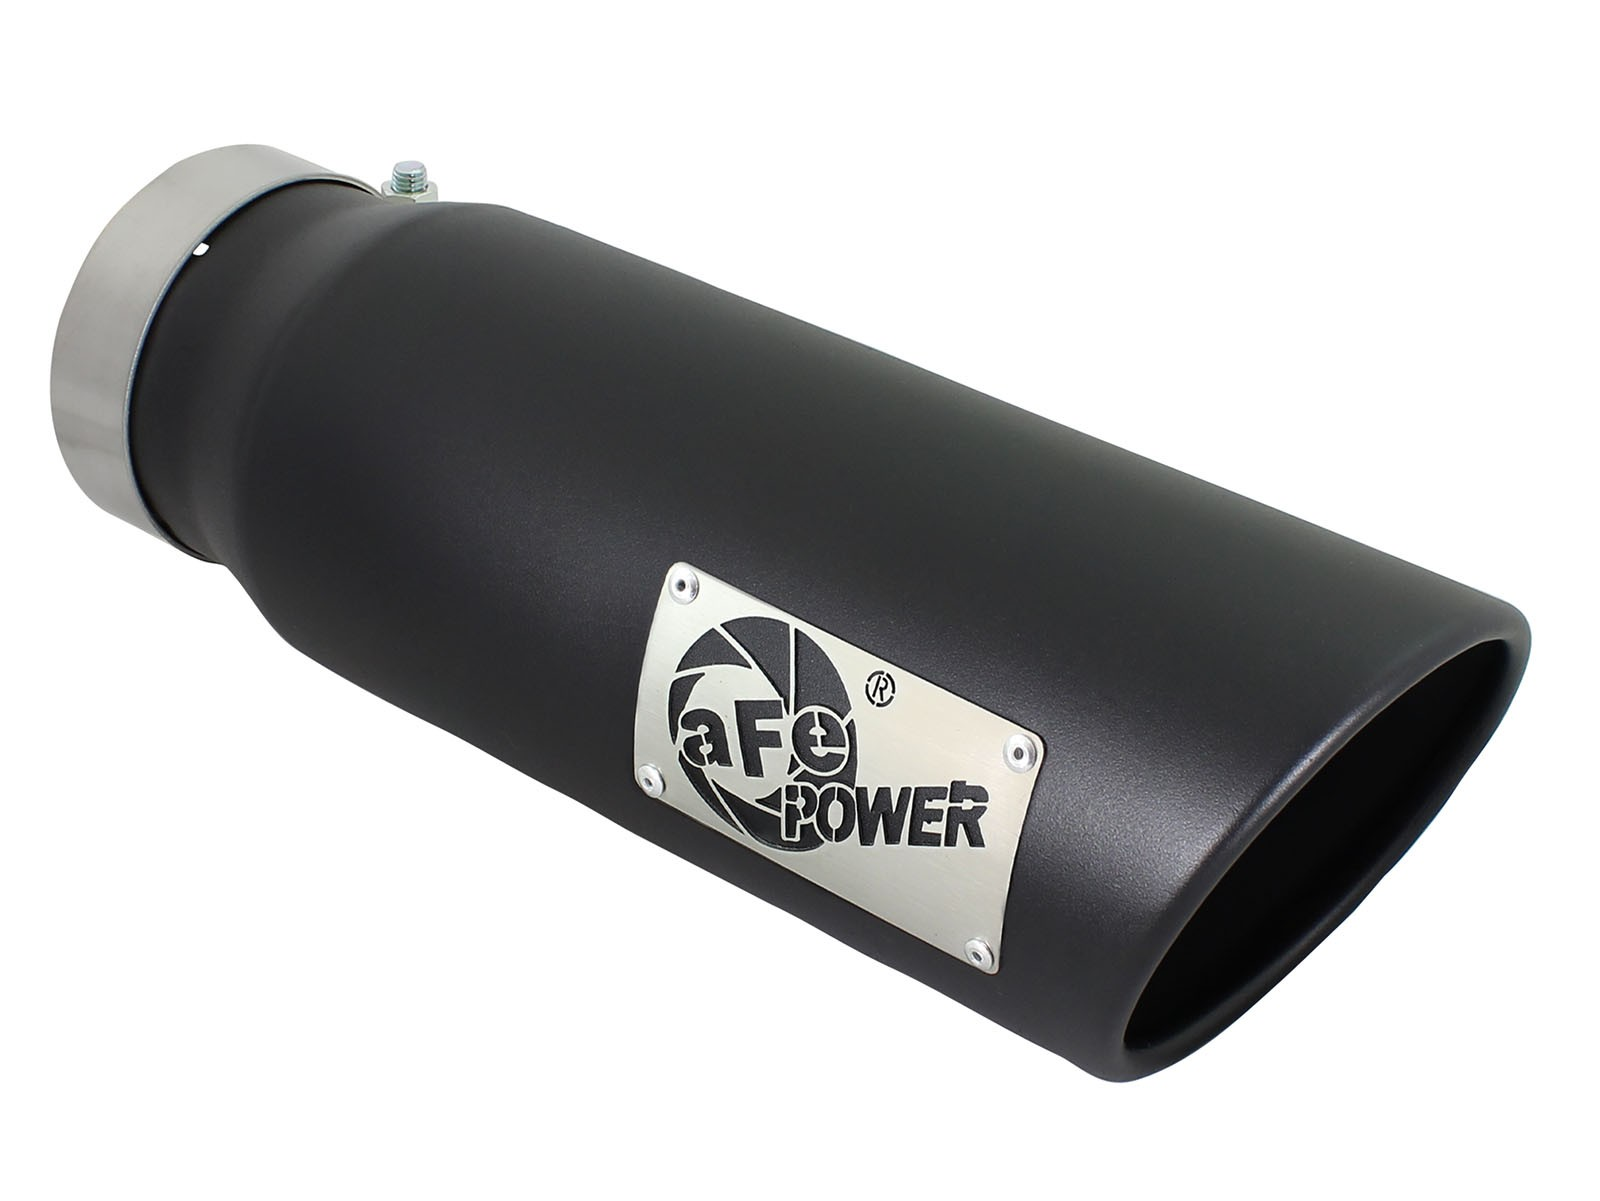 """aFe POWER 49T40501-B15 MACH Force-Xp 4"""" 304 Stainless Steel Exhaust Tip"""